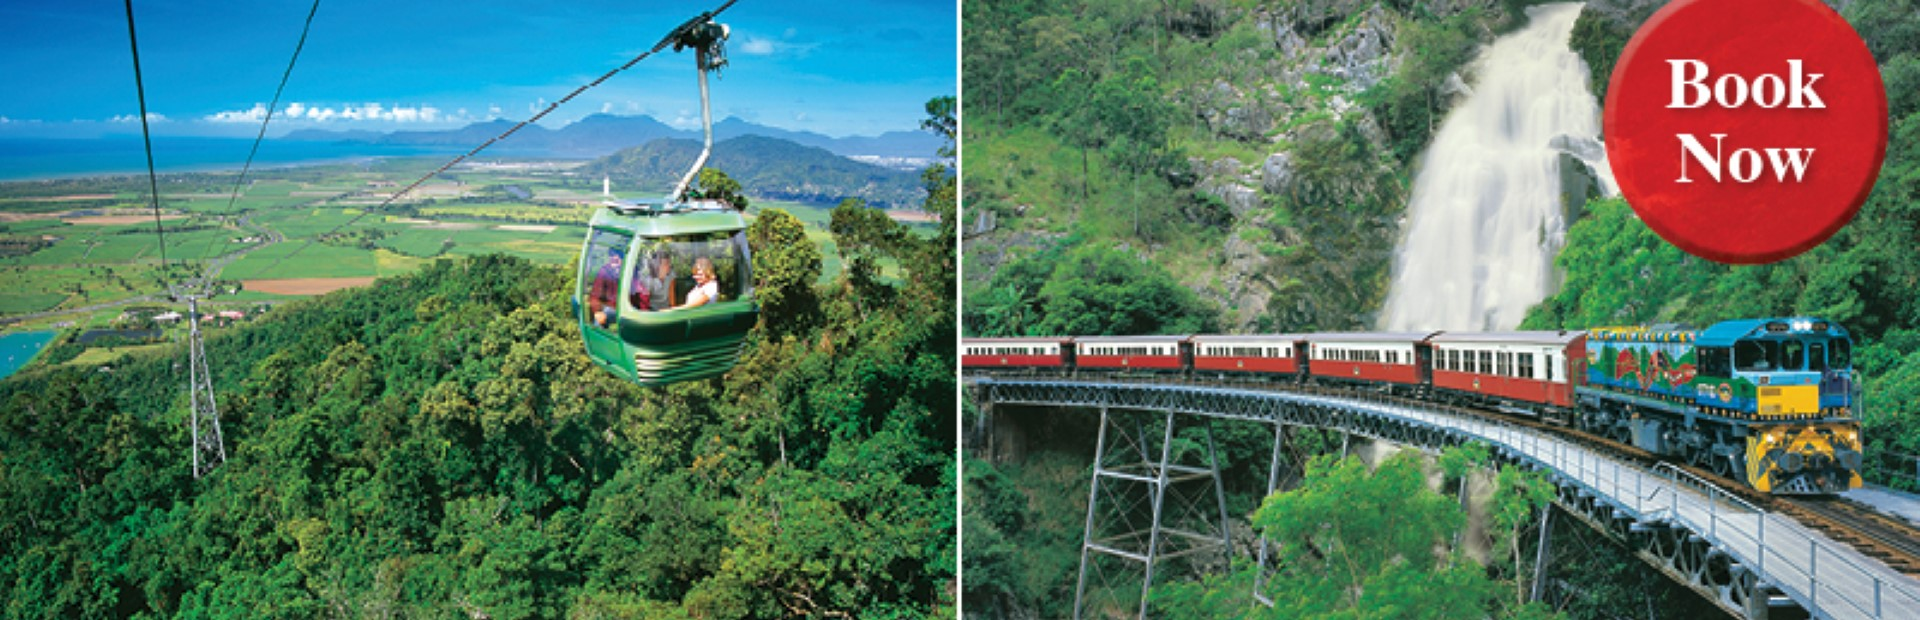 Kuranda Deluxe with Skyrail Rainforest Cableway Ex Cairns CKS or 474S